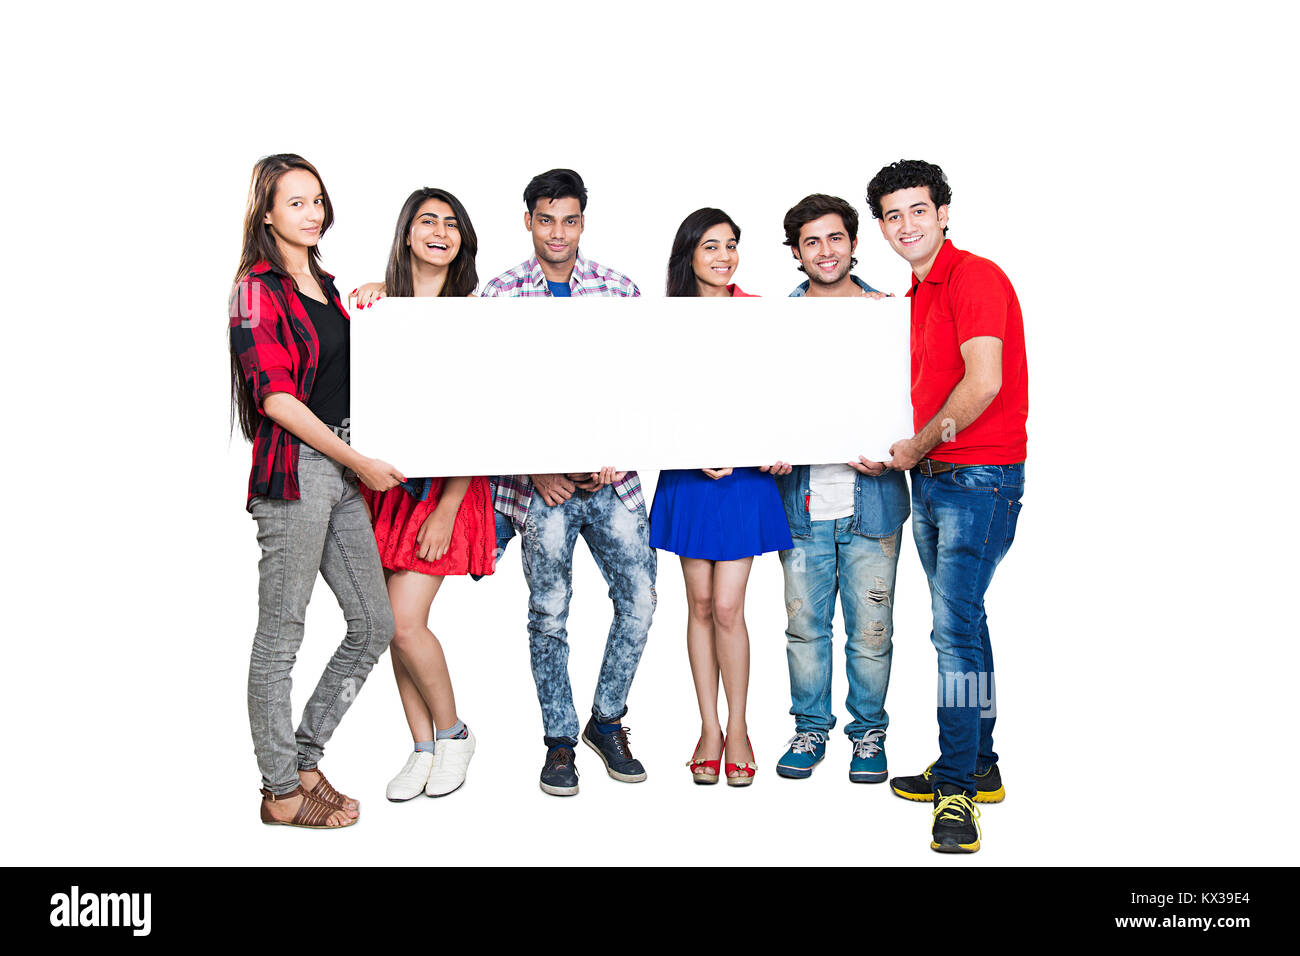 Indian Group College Student s Friends Standing Together Showing White Baord - Stock Image